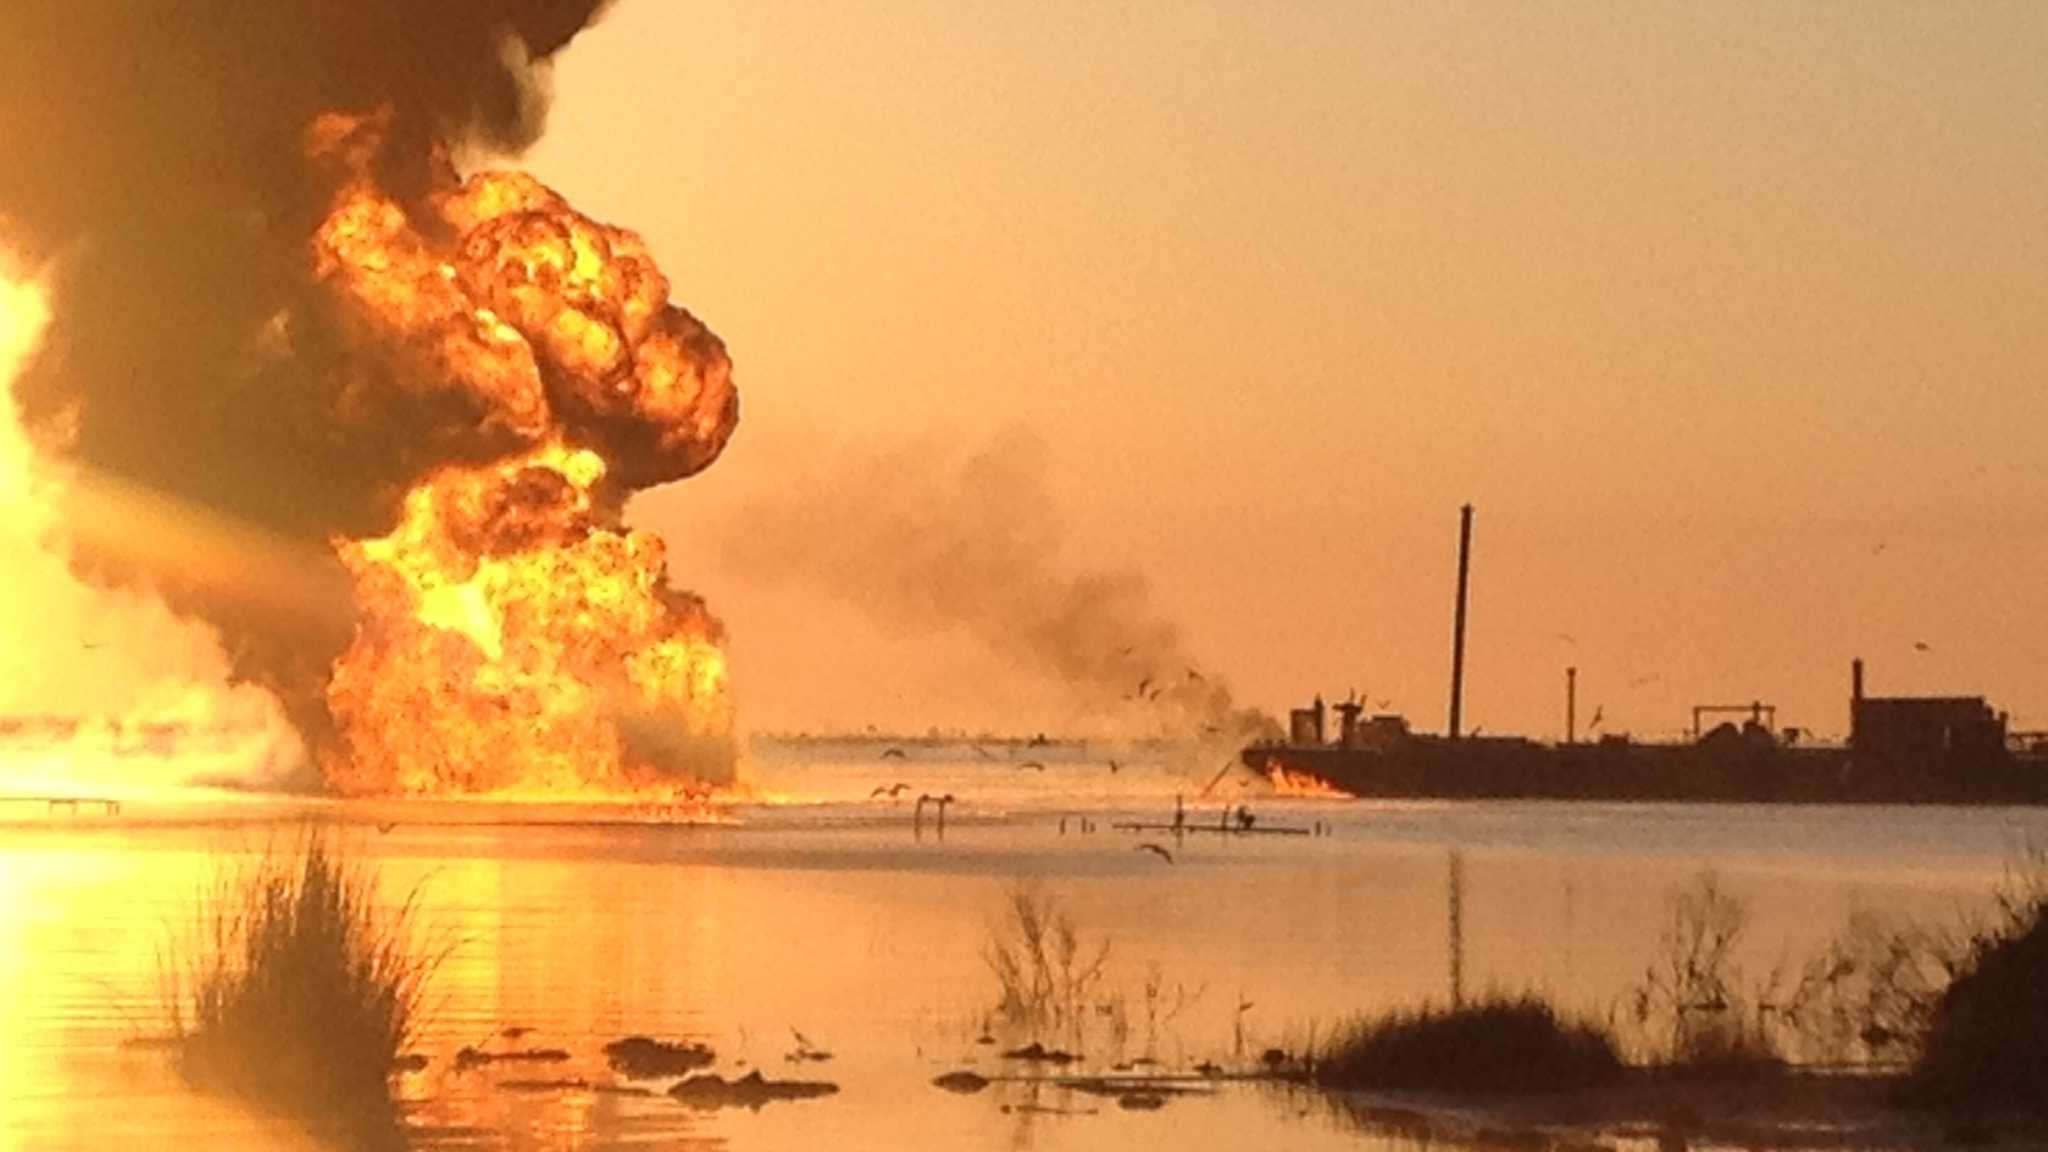 A pipeline burns after a collision involving the tug boat Shanon E. Setton, near Bayou Perot 30 miles south of New Orleans, March 15, 2013.